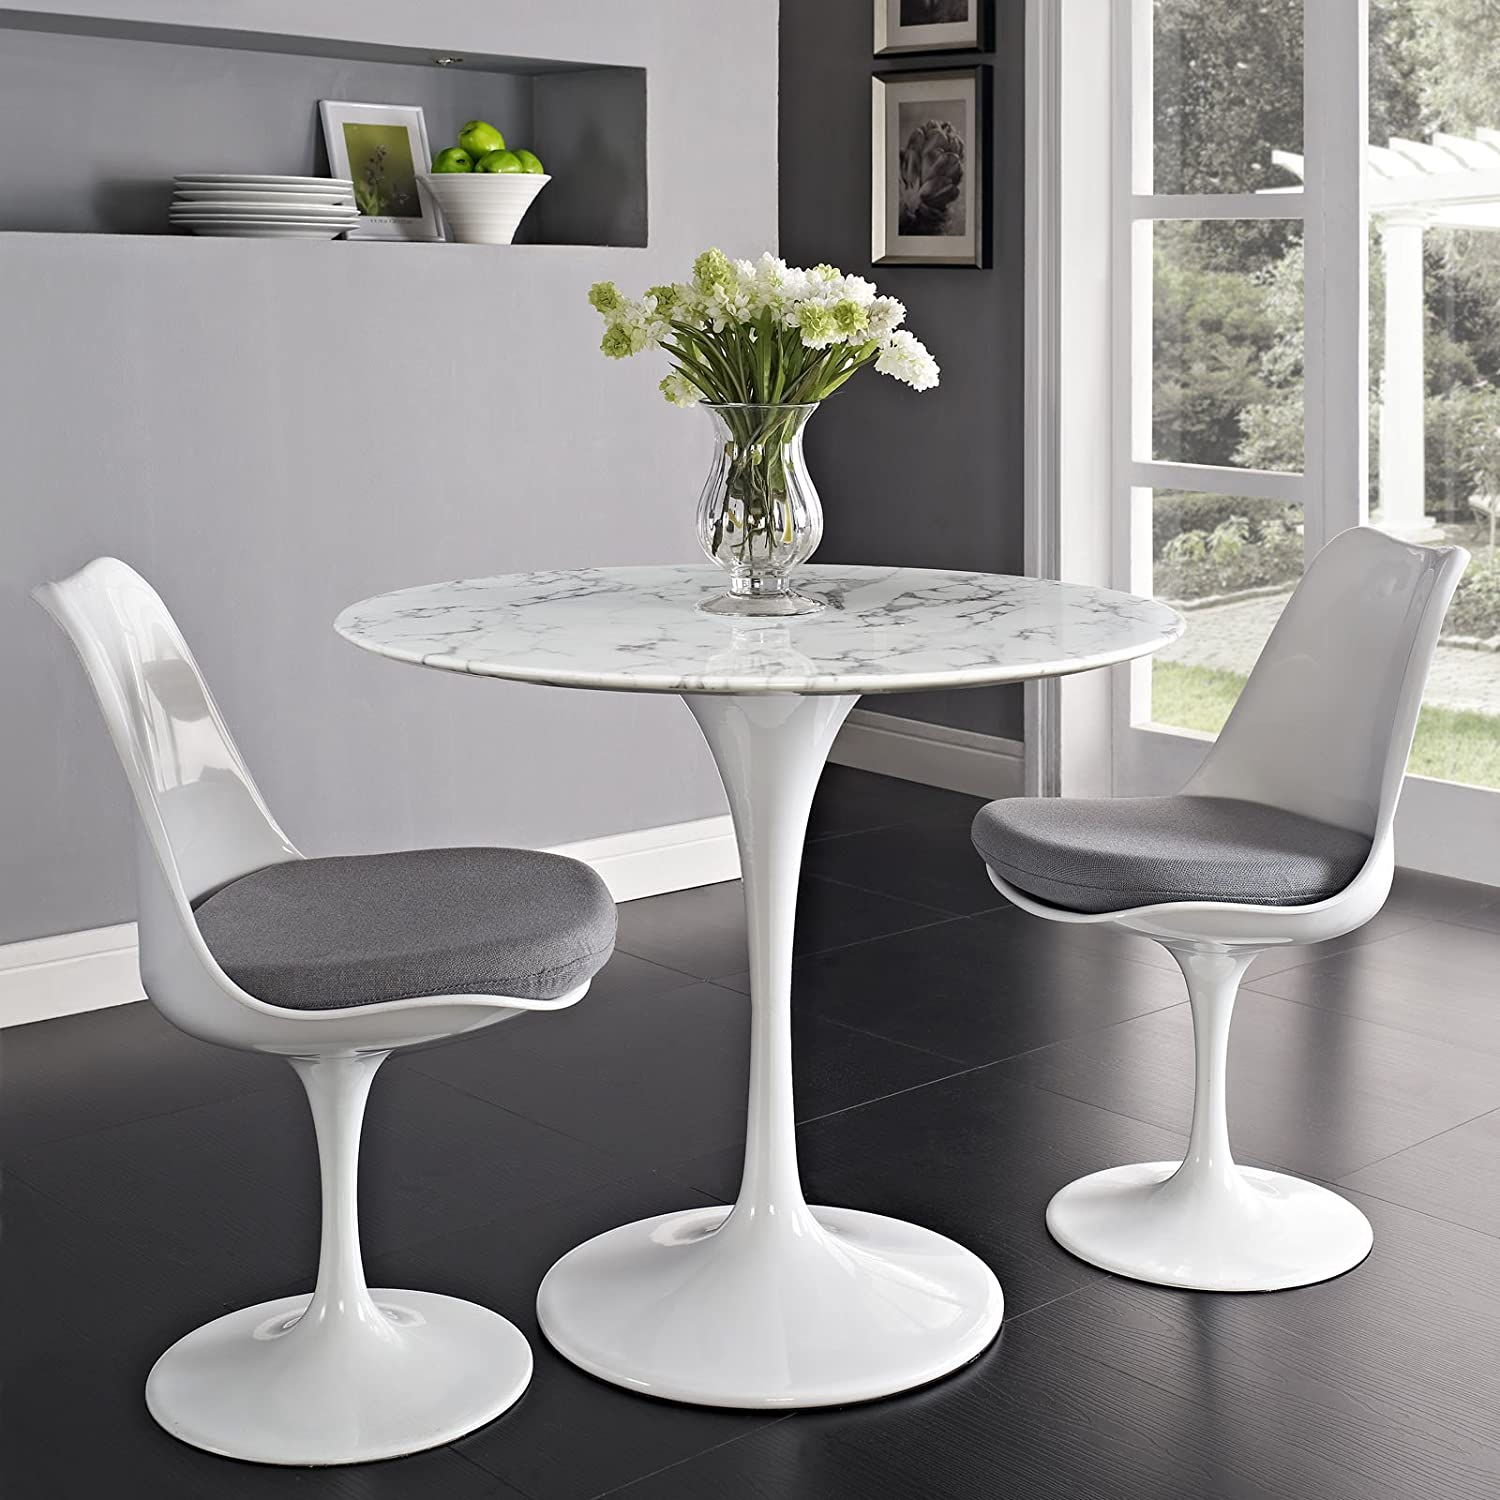 Amazoncom Modway Lippa Artificial Marble Dining Table In White - 30 round marble table top